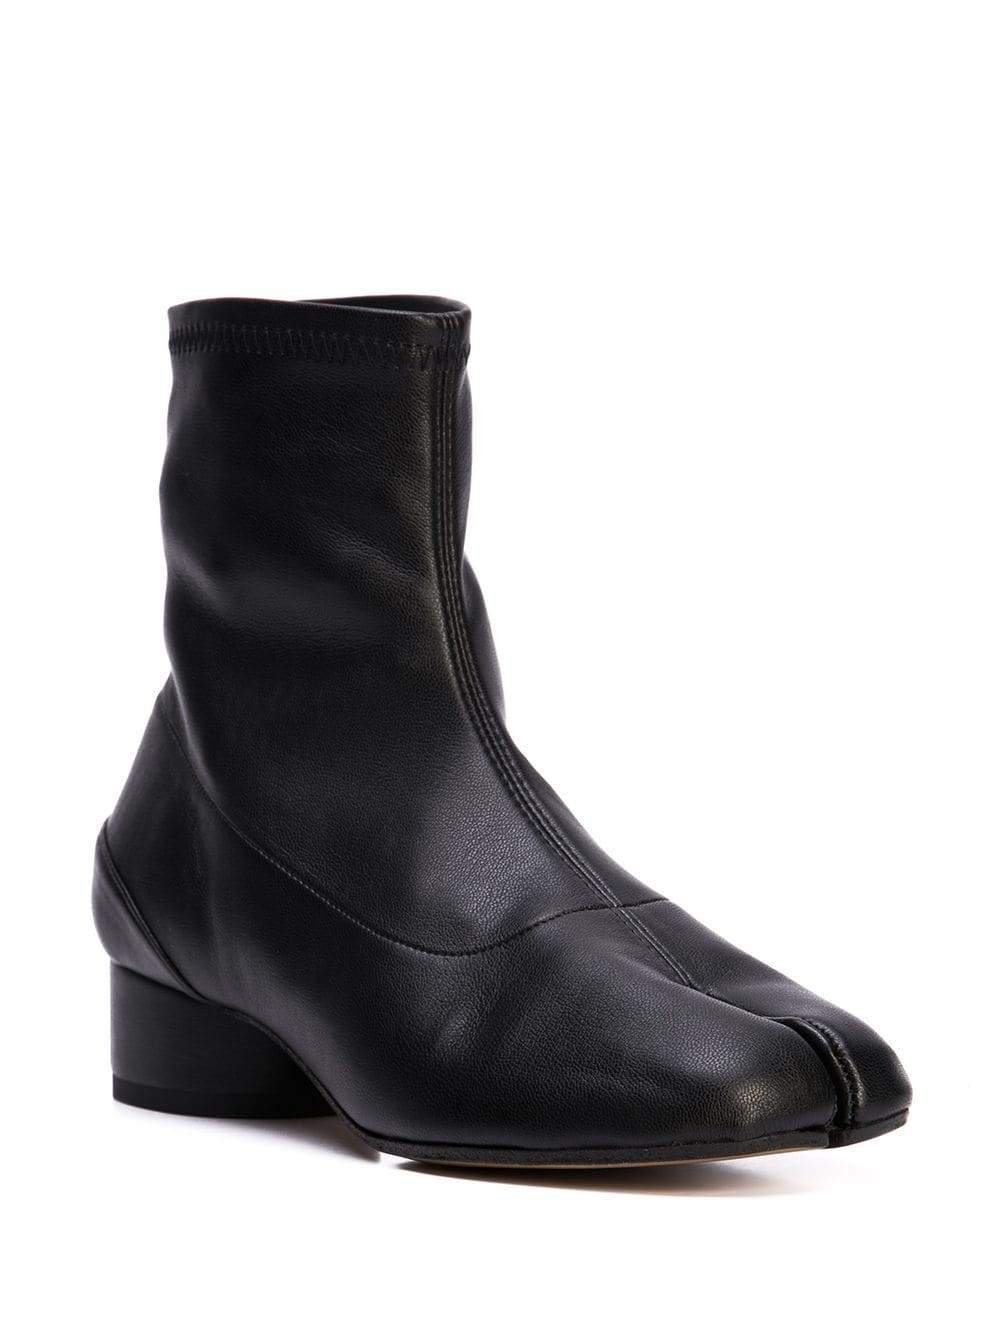 Black Stretch Leather Low Heel Tabi Boots